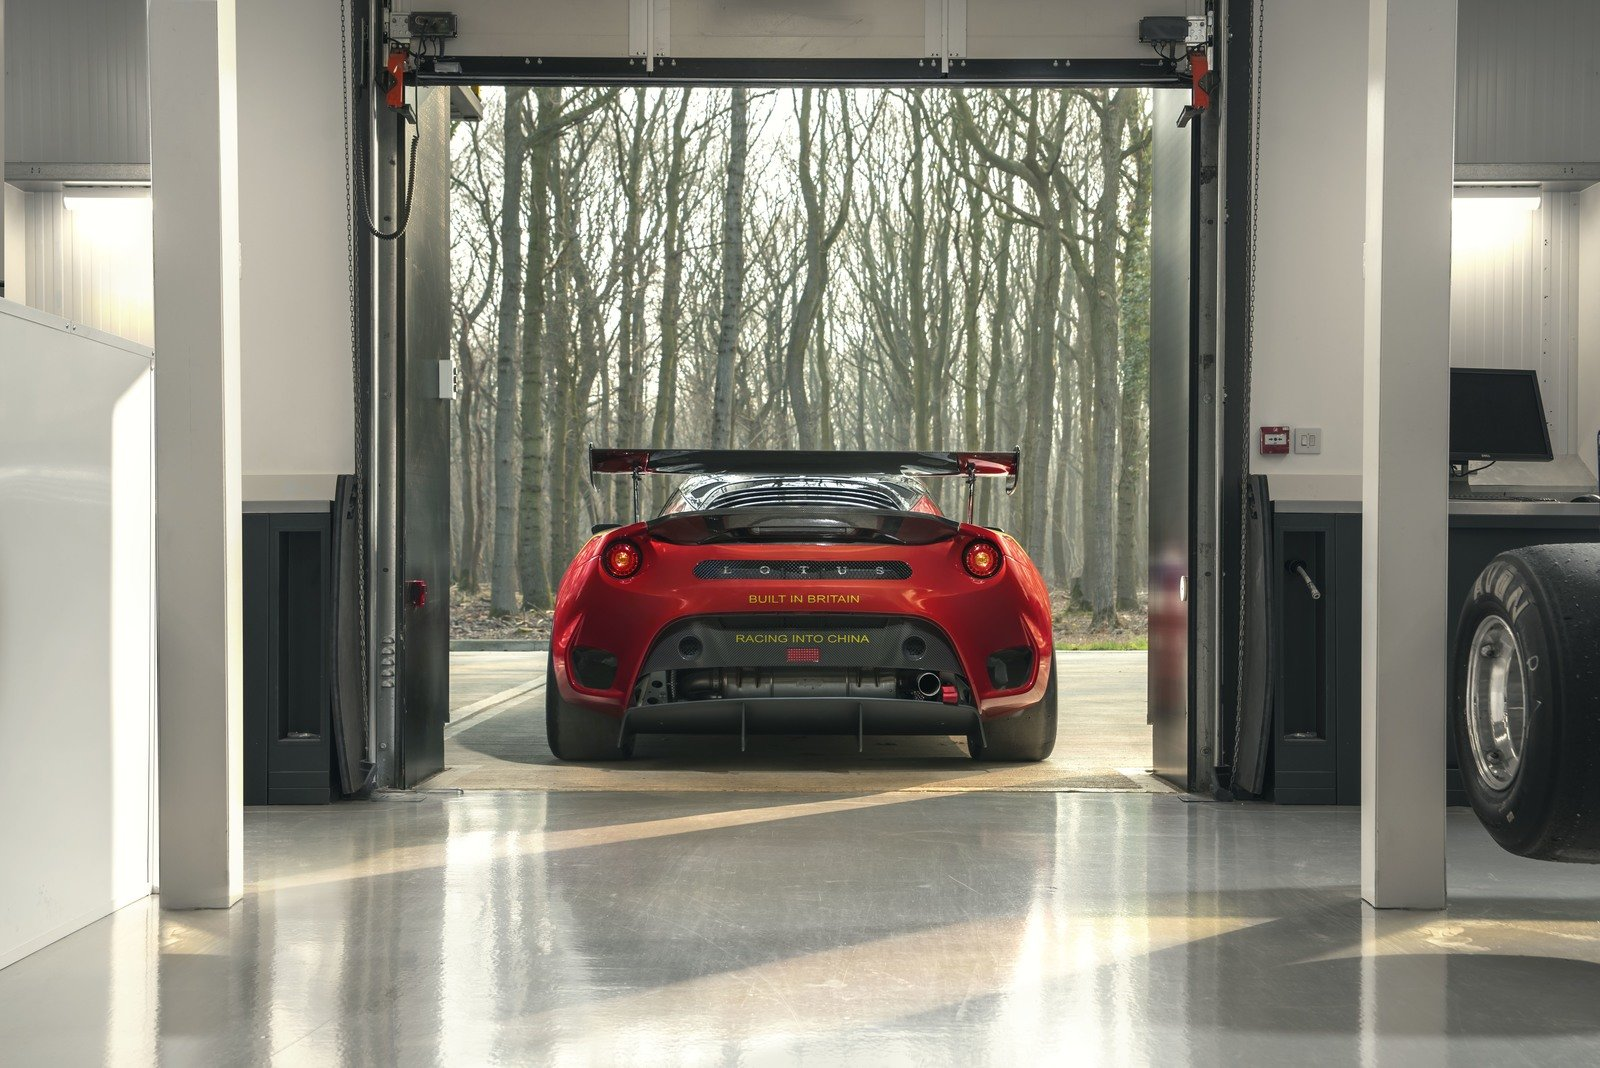 2019 Lotus Evora Gt4 Concept Wallpapers 33 Hd Images Newcarcars